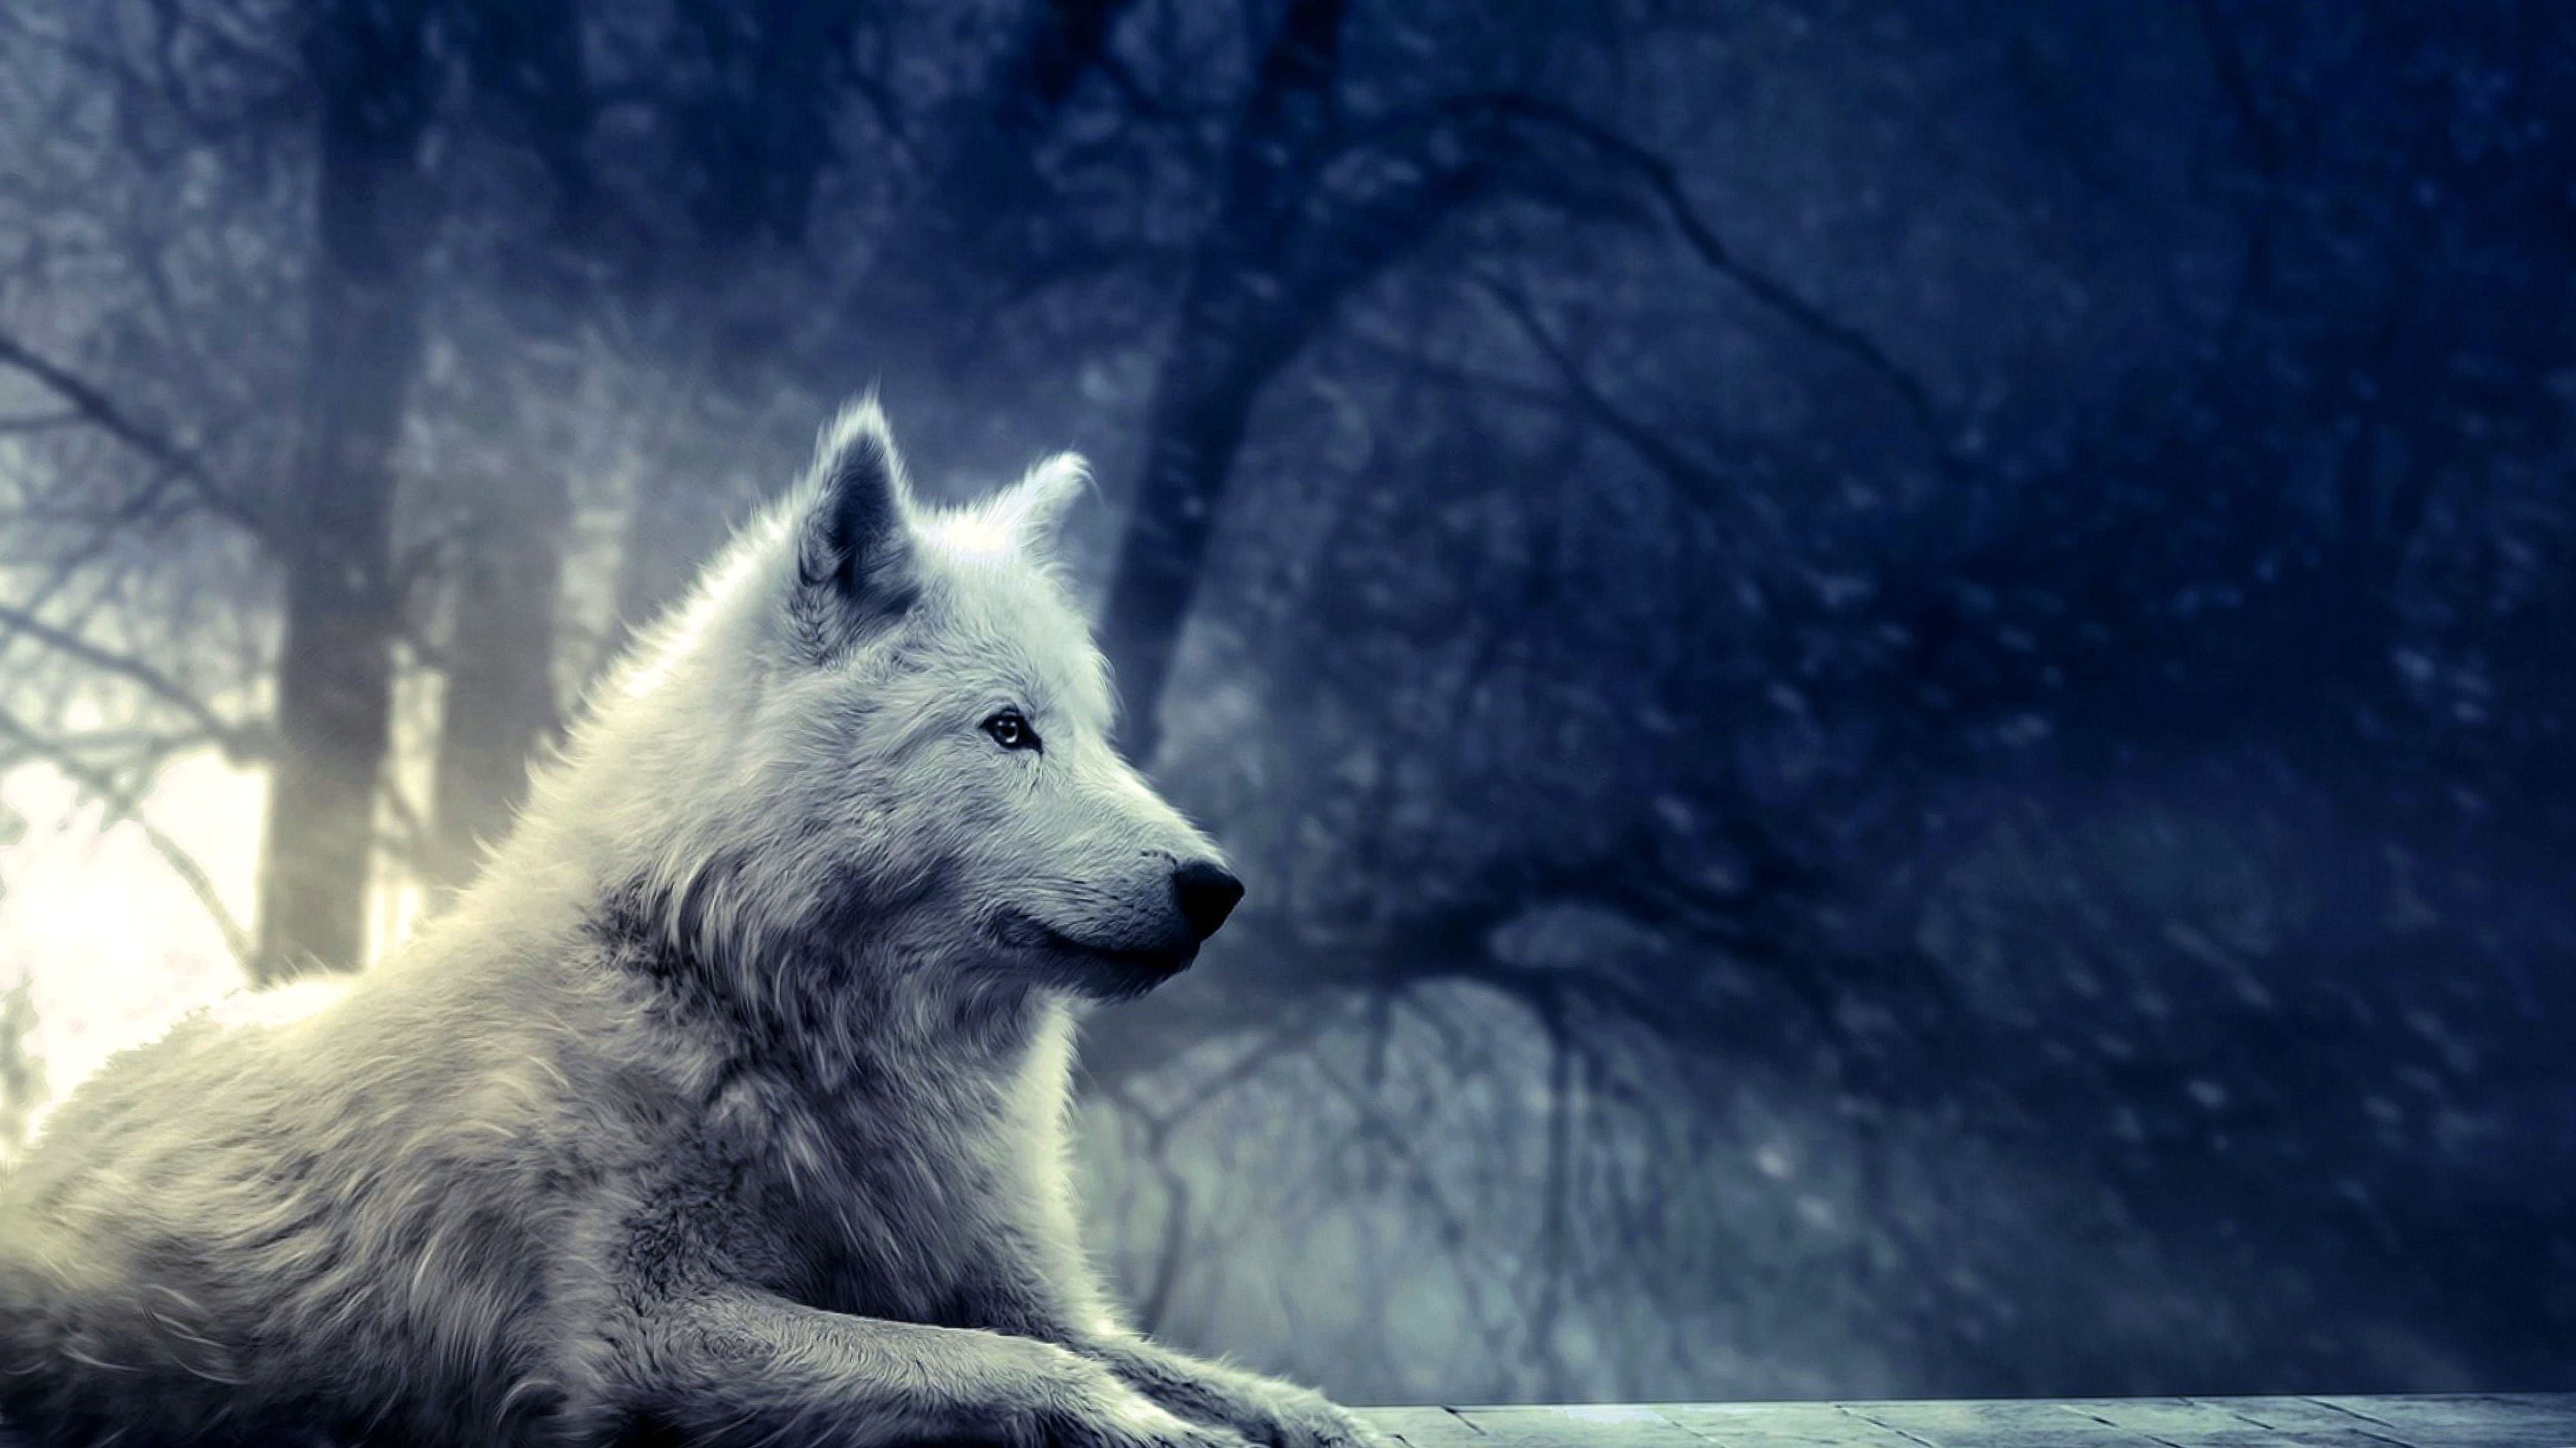 Wallpaper HD 4K Wolf